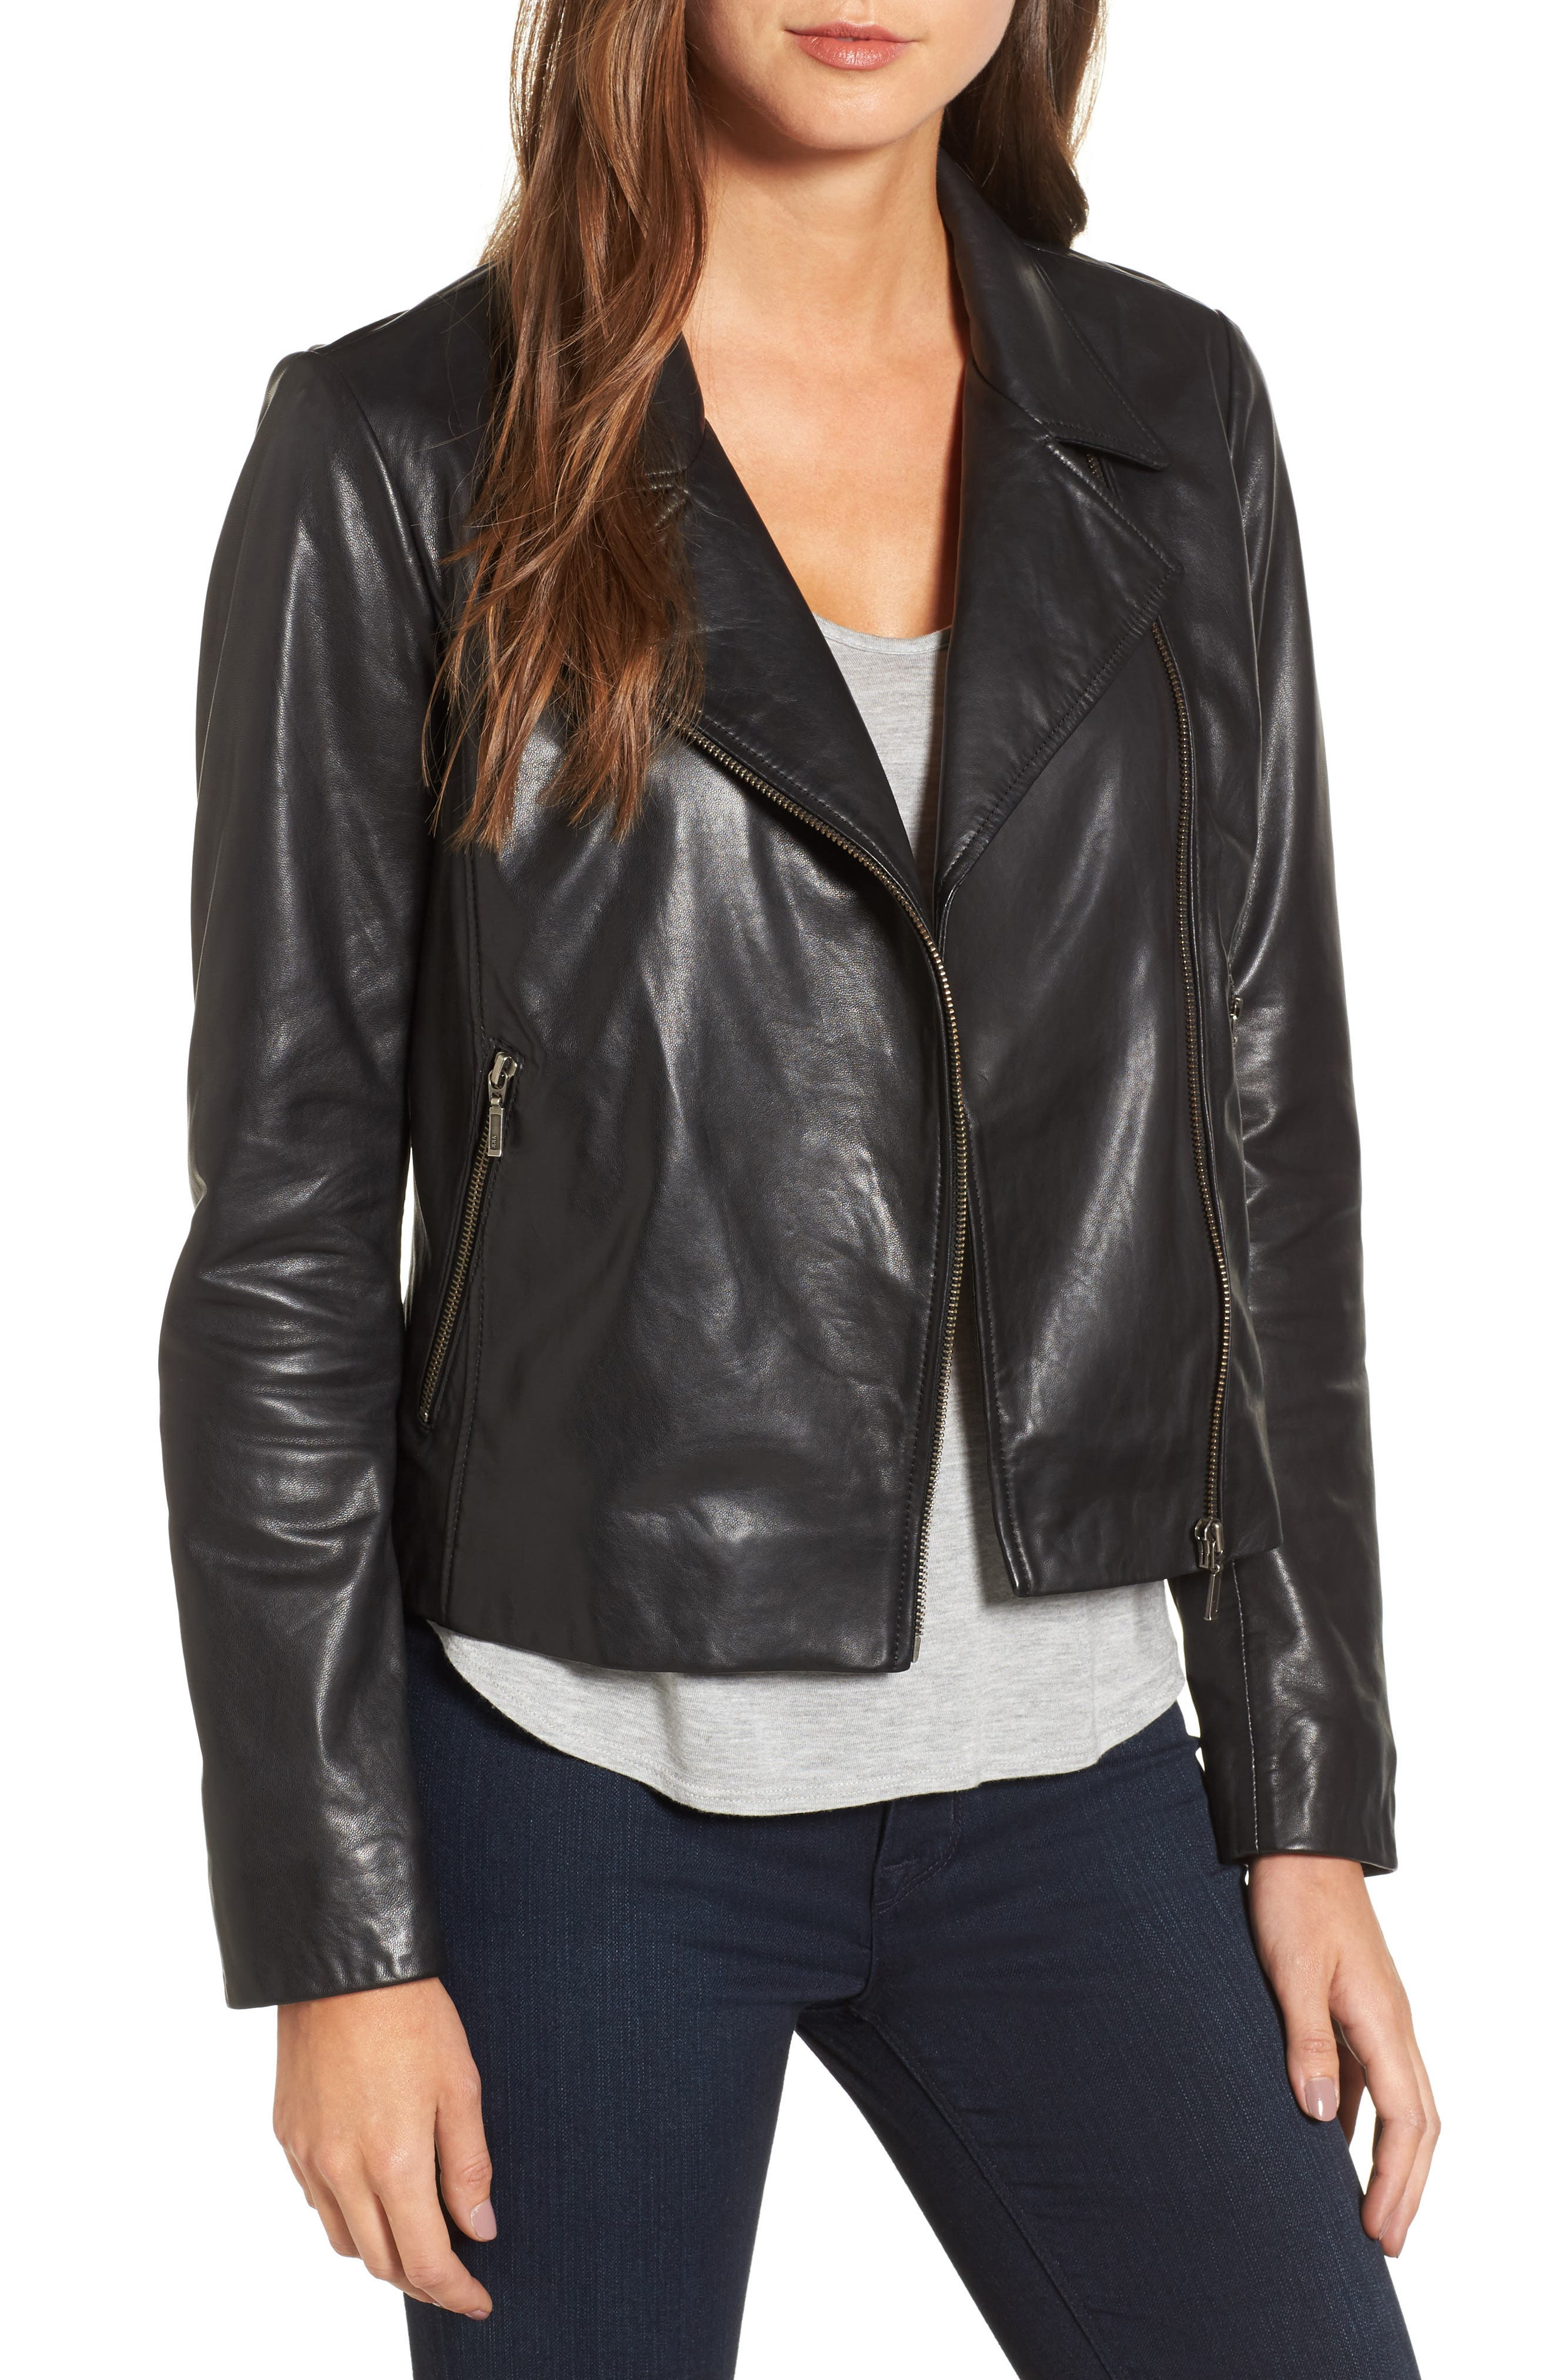 Alternate Image 1 Selected - Halogen® Leather Moto Jacket (Regular & Petite)